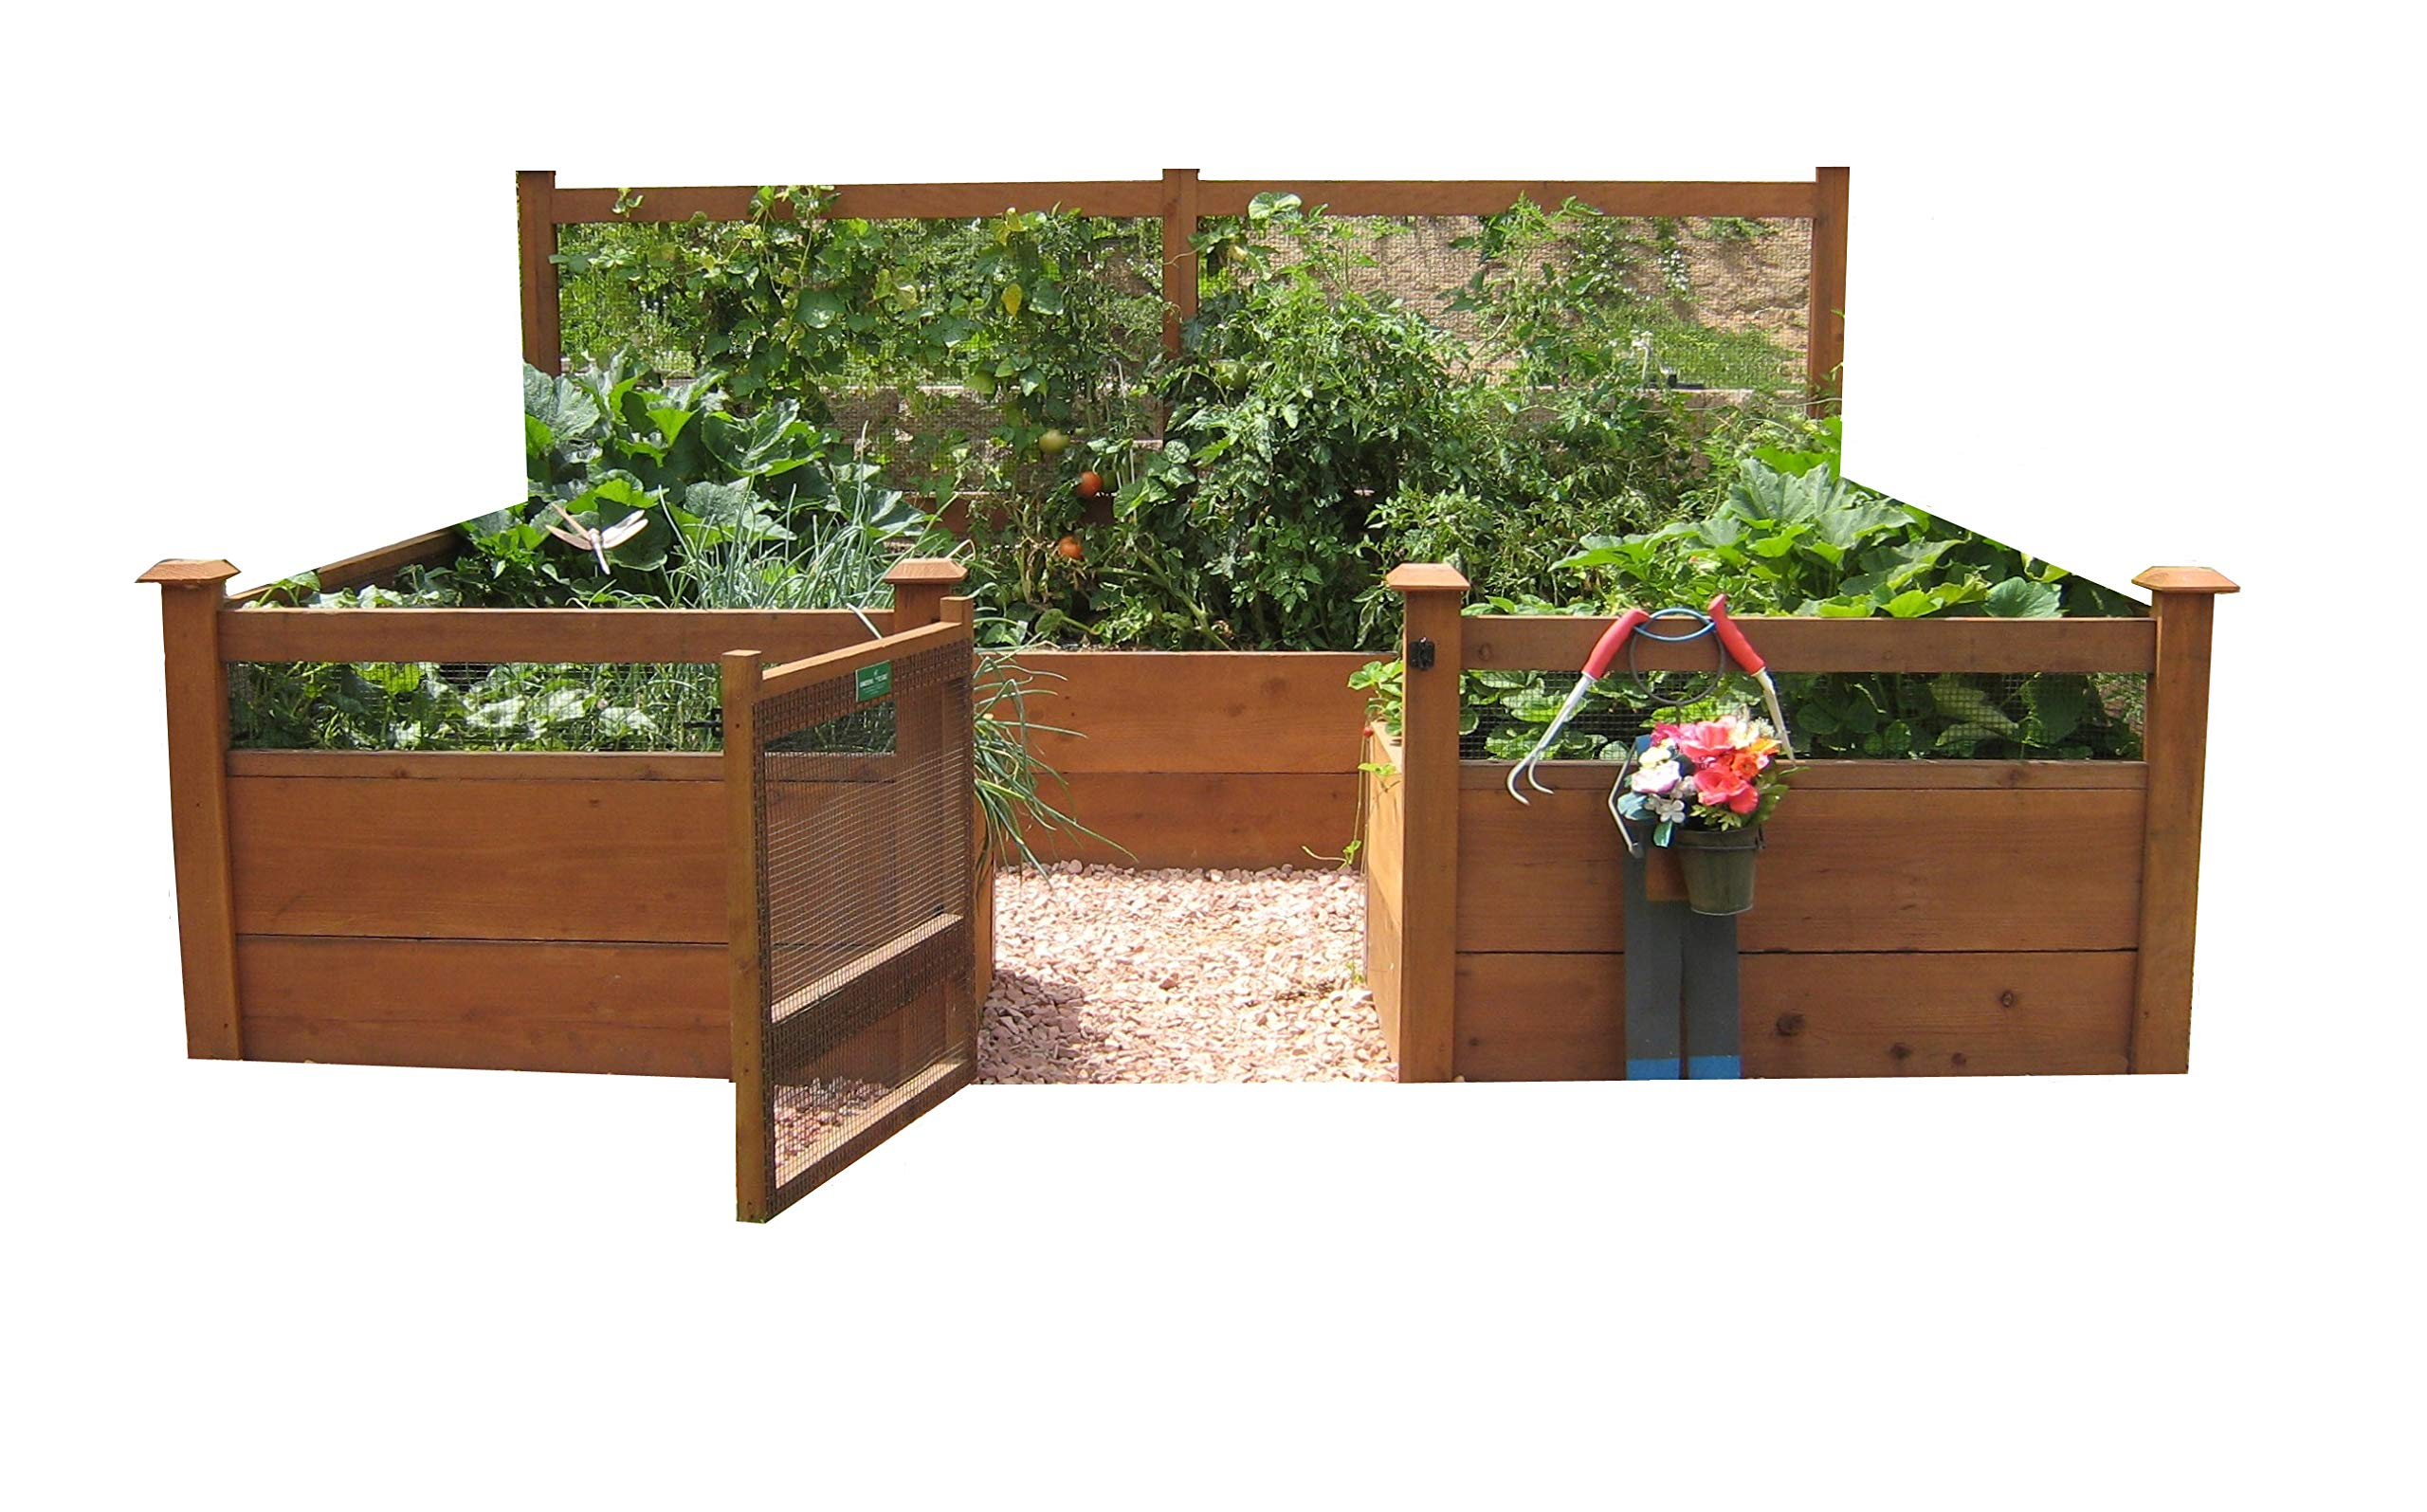 """Just Add Lumber Vegetable Garden Kit - 8'x12' Deluxe 1 DOES NOT INCLUDE LUMBER. Kit includes everything but the lumber: 12 Raised bed brackets, black plastic netting for fencing, black nylon netting for rear trellis, black vinyl-coated steel wire for gate, ceramic-coated rust resistant screws, plus all other required hardware and detailed instructions Buy your own rough lumber locally - Build the ultimate vegetable garden with this kit. Required rough construction lumber : (6) 2""""x10""""x12', (6) 2""""x10""""x8', (5) 2""""x4""""x12', (1) 2""""x4""""x6', (4) 2""""x2""""x12', (3) 1-5/8""""x1-5/8""""x12' (actual size). Note: the lumber boards will need to be further cut into the sizes described in the assembly instructions Gated garden keeps out rabbits and dogs"""